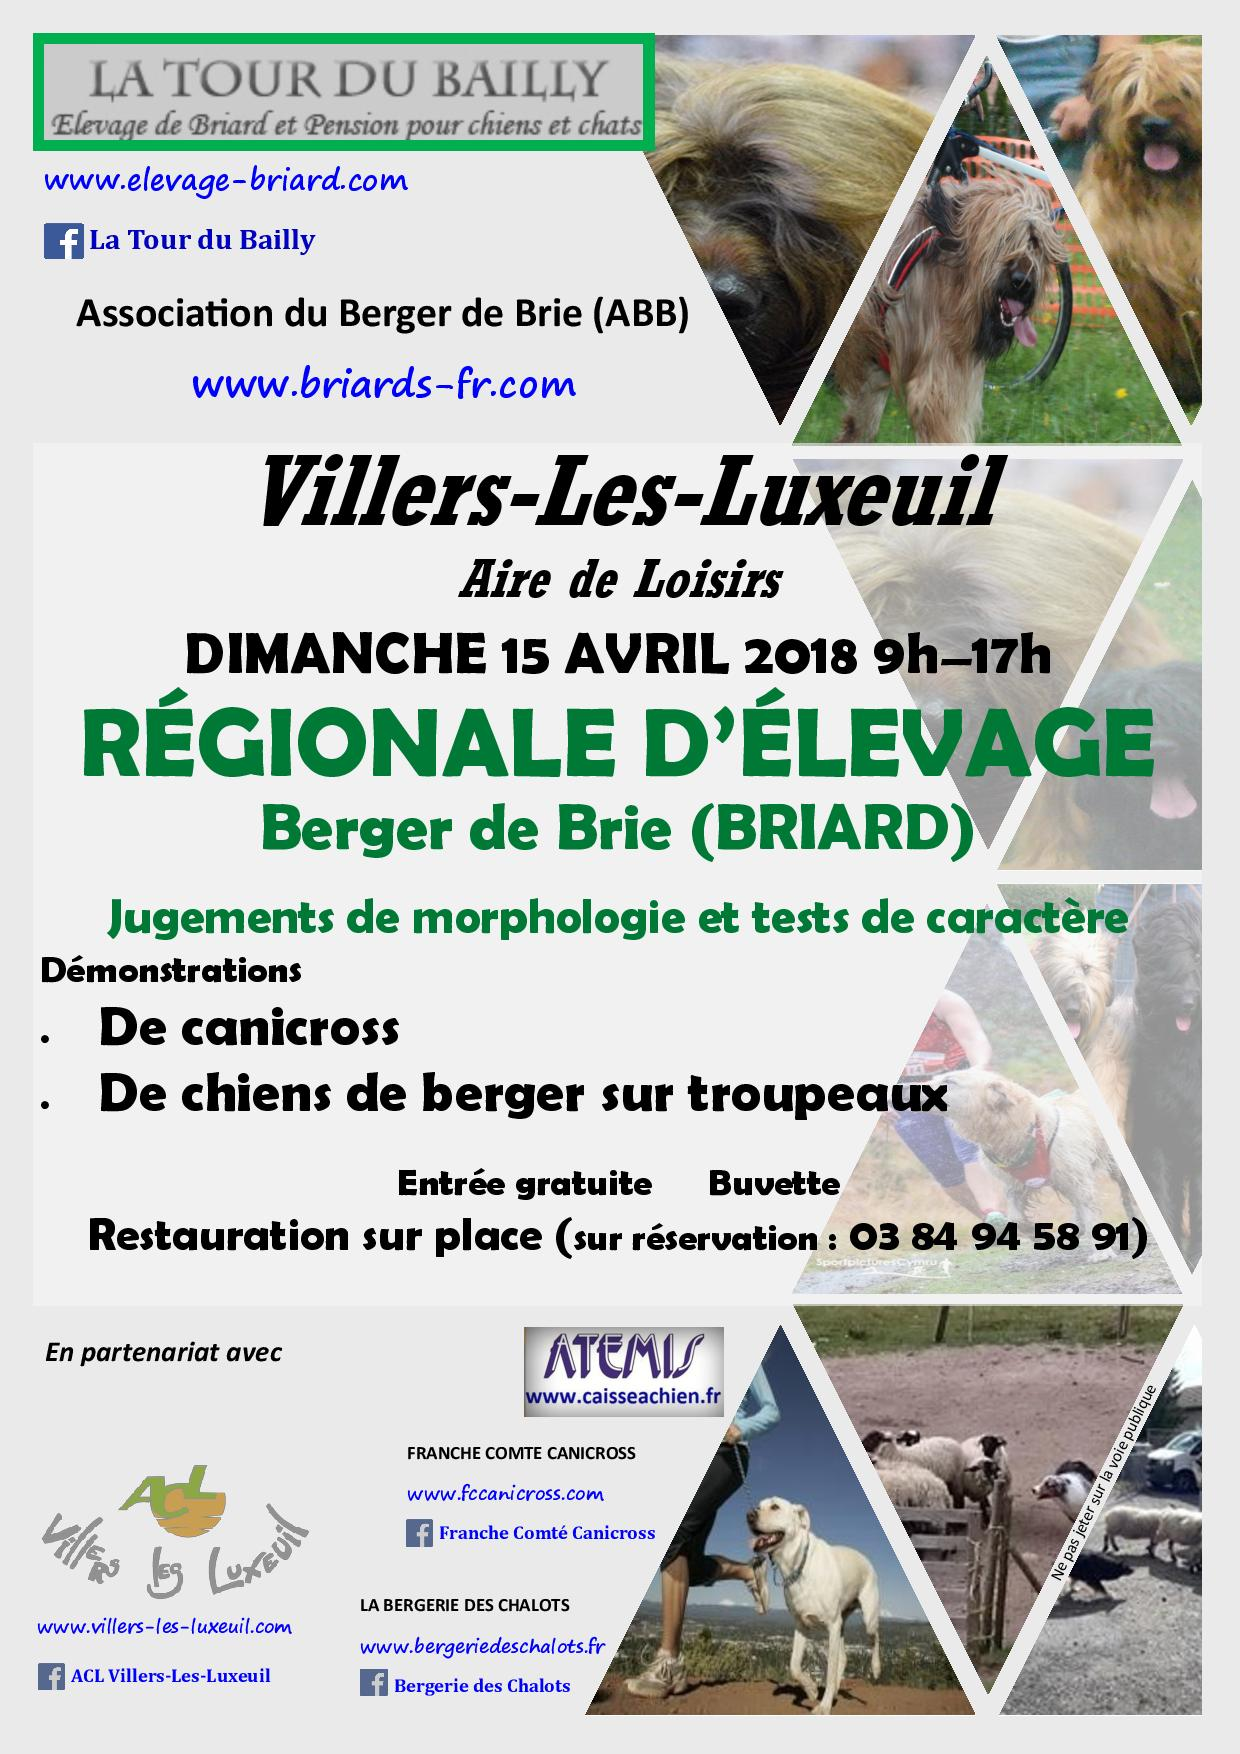 https://www.villers-les-luxeuil.com/projets/villers/files/images/2018_Evenements/01_Tracts/Flyer_Manifestation_canine_2018_Villers_Les_Luxeuil_page_001.jpg